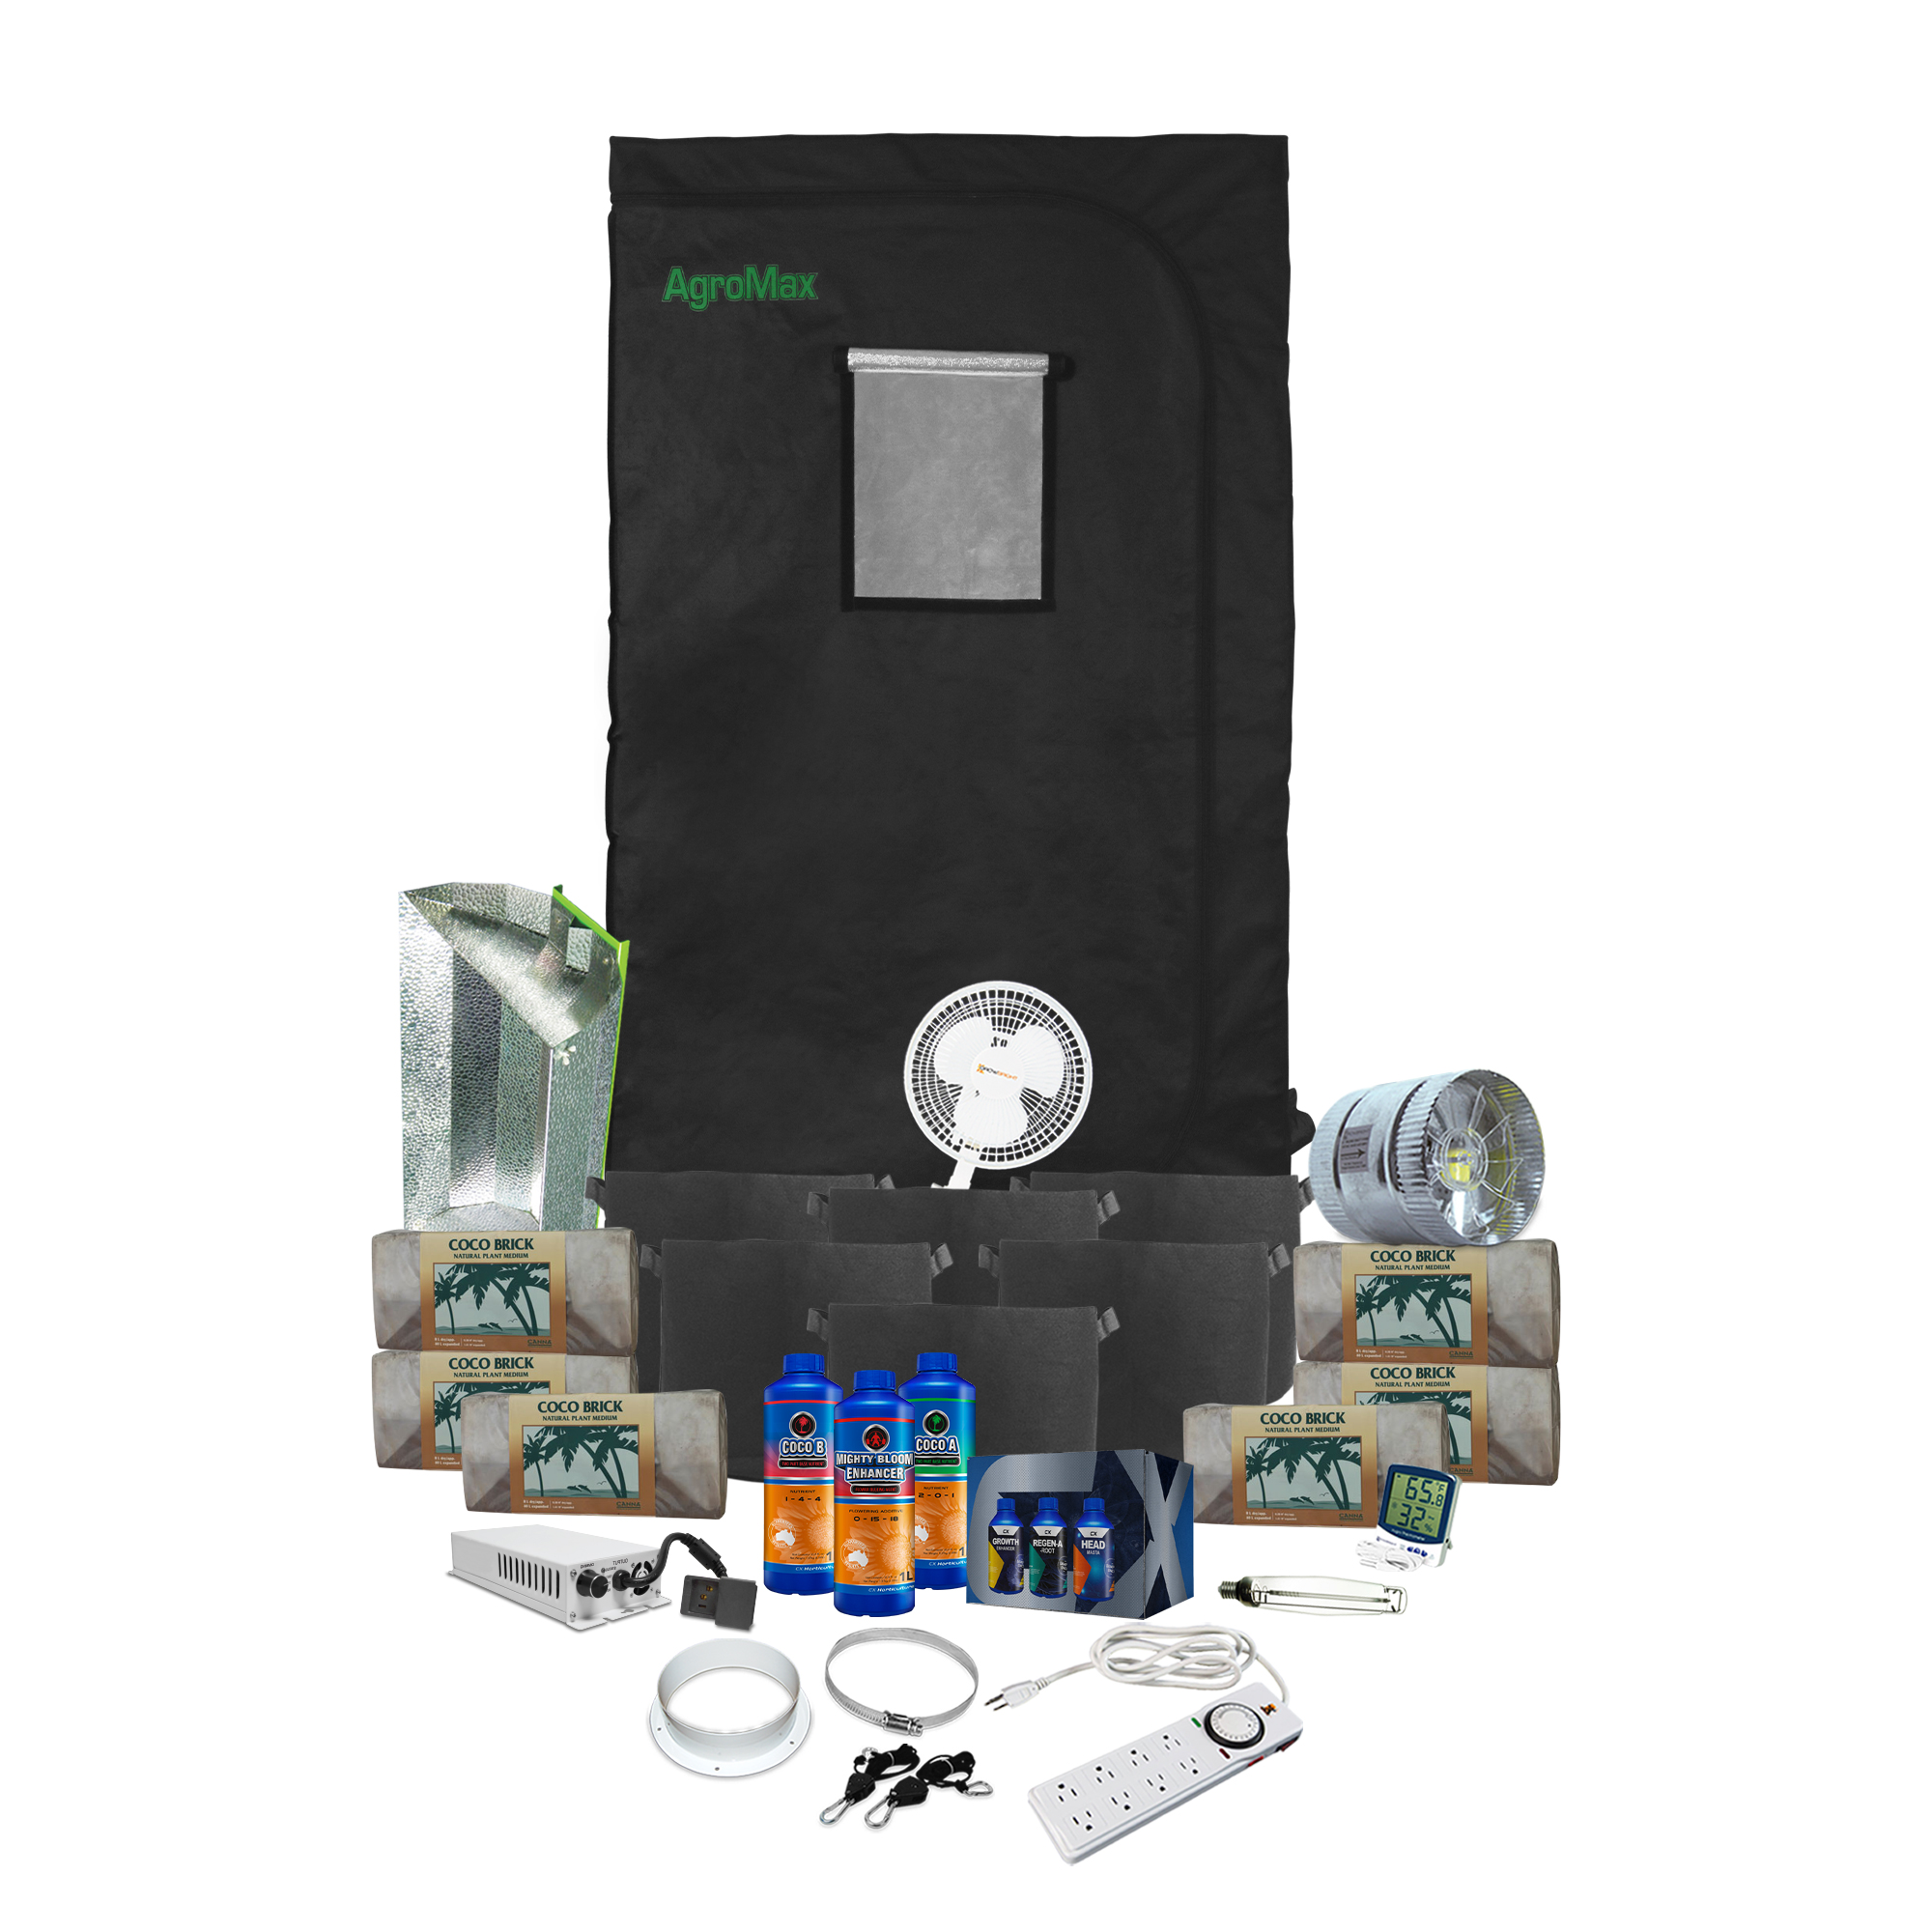 HTG Original 3'x3' Hydroponic LED Grow Tent Kit